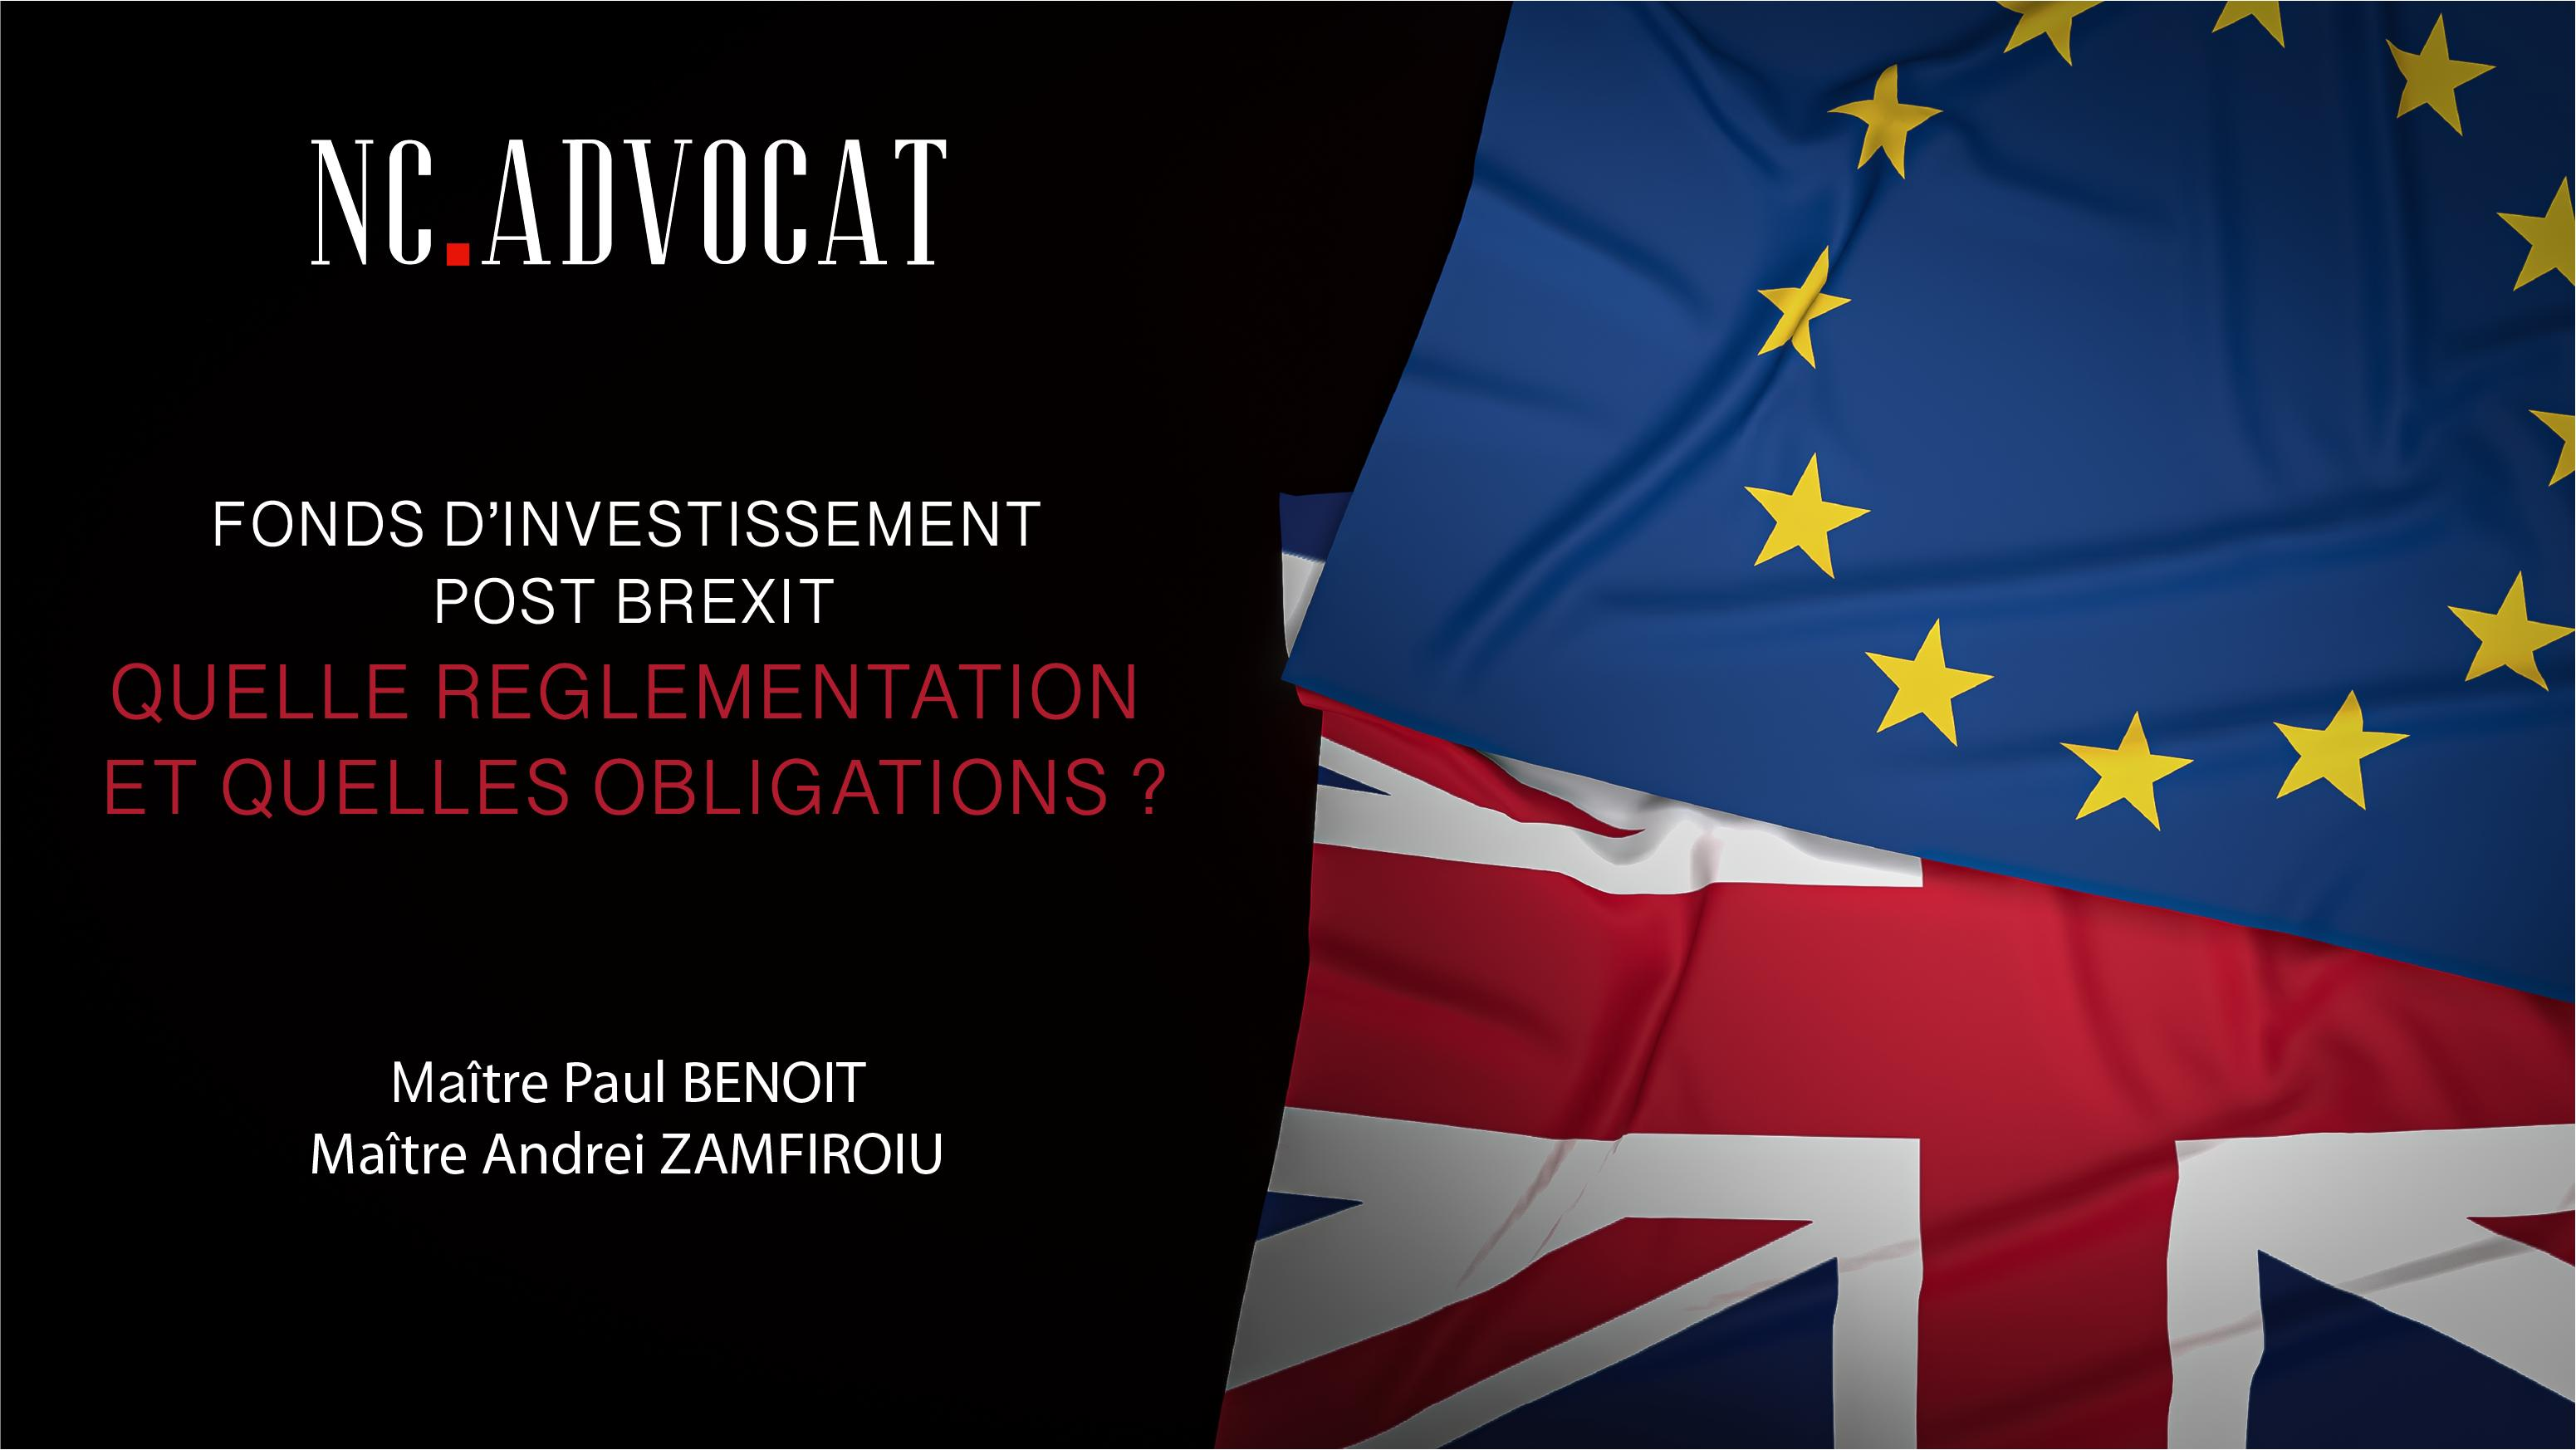 Image article - FONDS D'INVESTISSEMENT POST BREXIT : QUELLE REGLEMENTATION ET QUELLES OBLIGATIONS ?